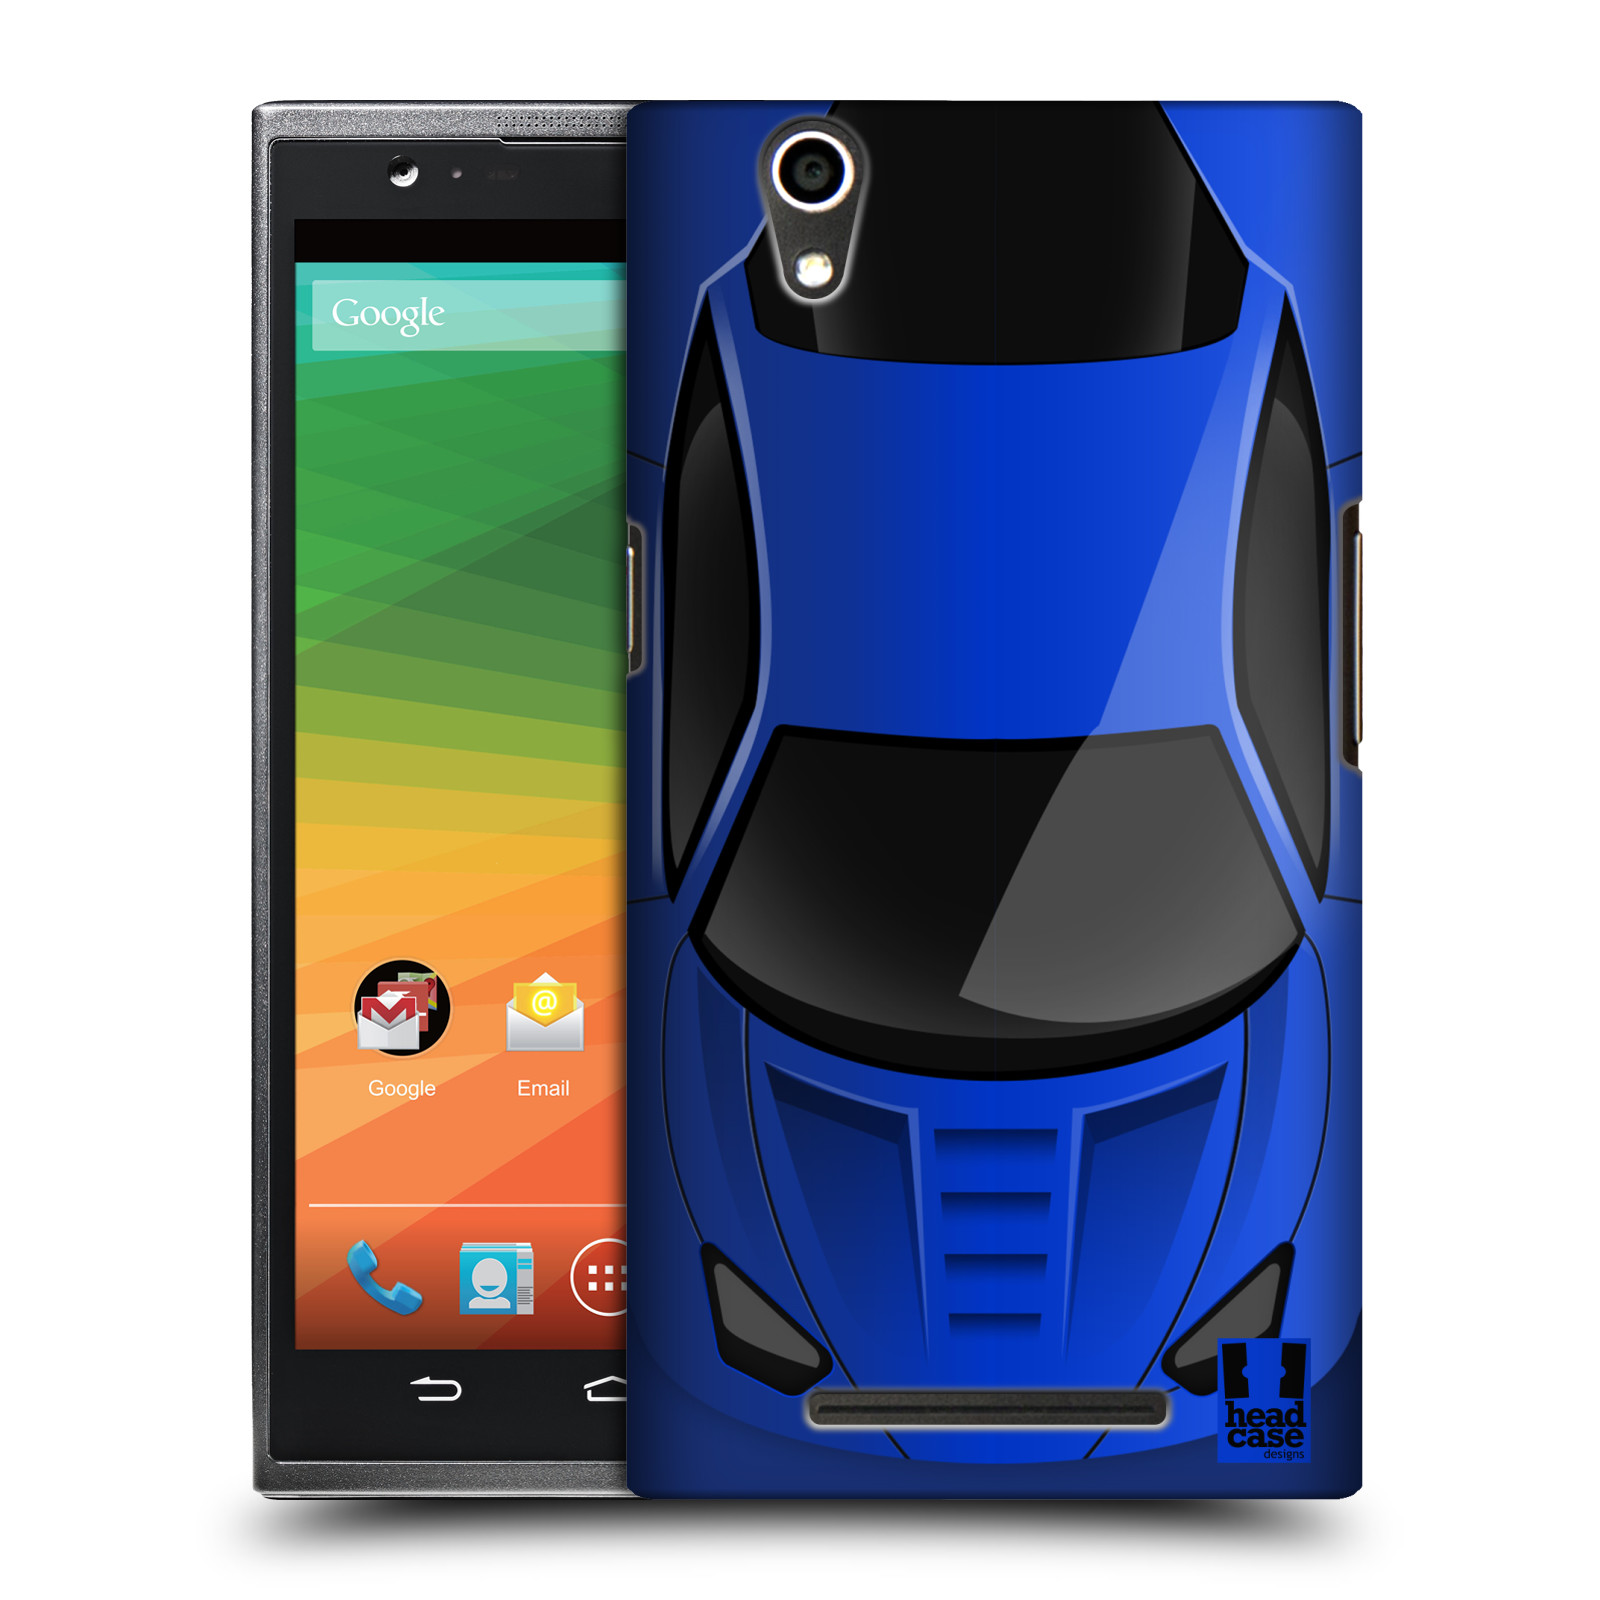 read zte zmax 2 for sale they